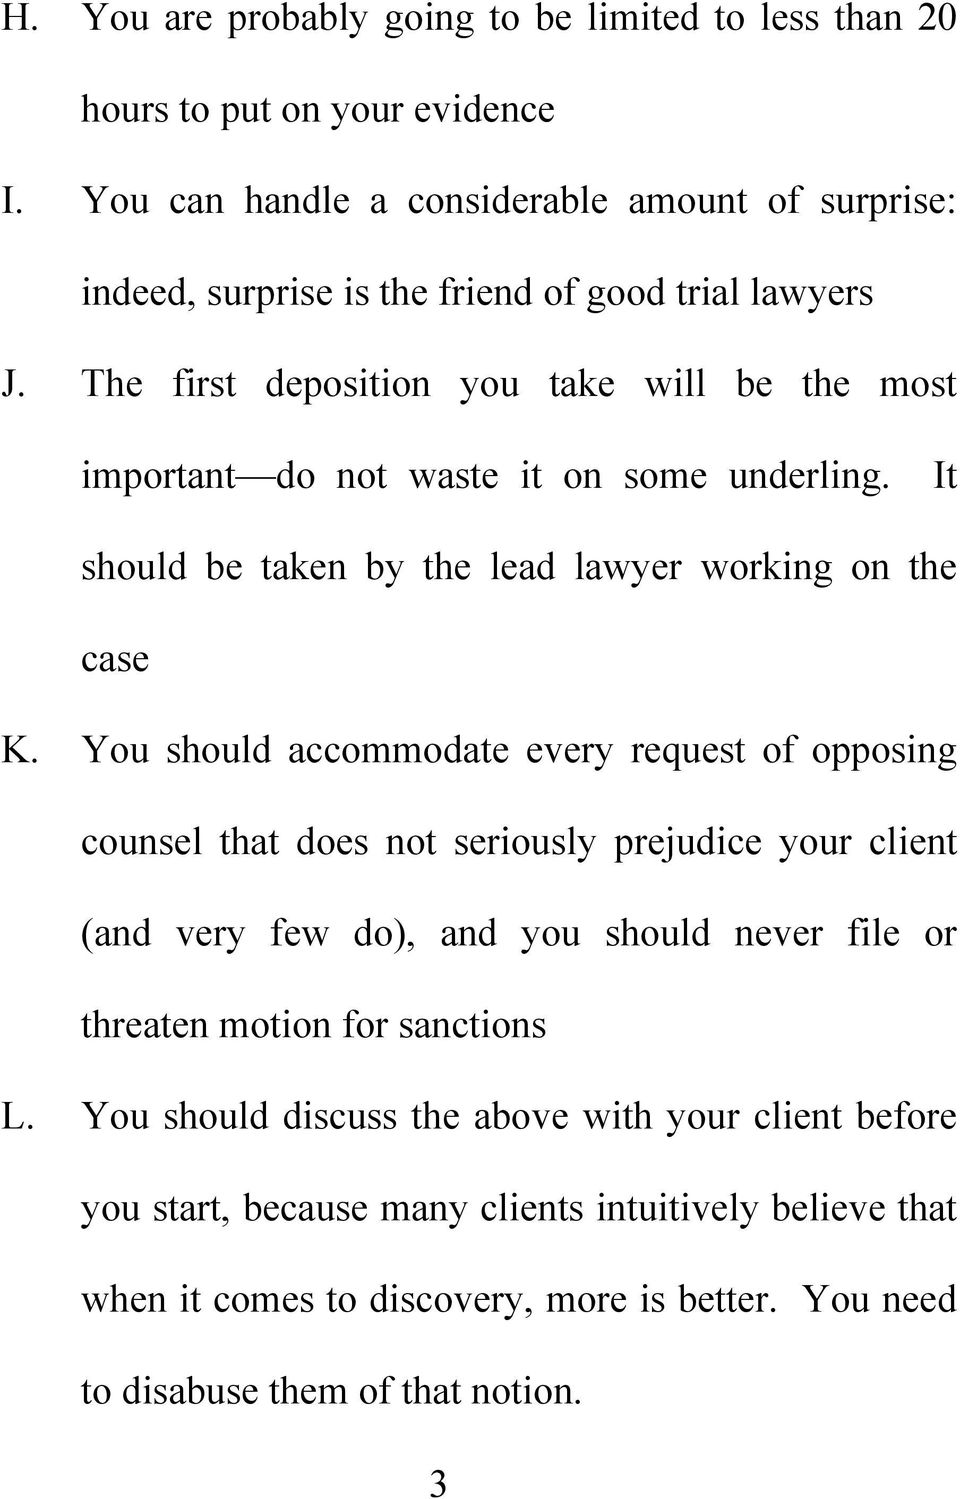 The first deposition you take will be the most important do not waste it on some underling. It should be taken by the lead lawyer working on the case K.